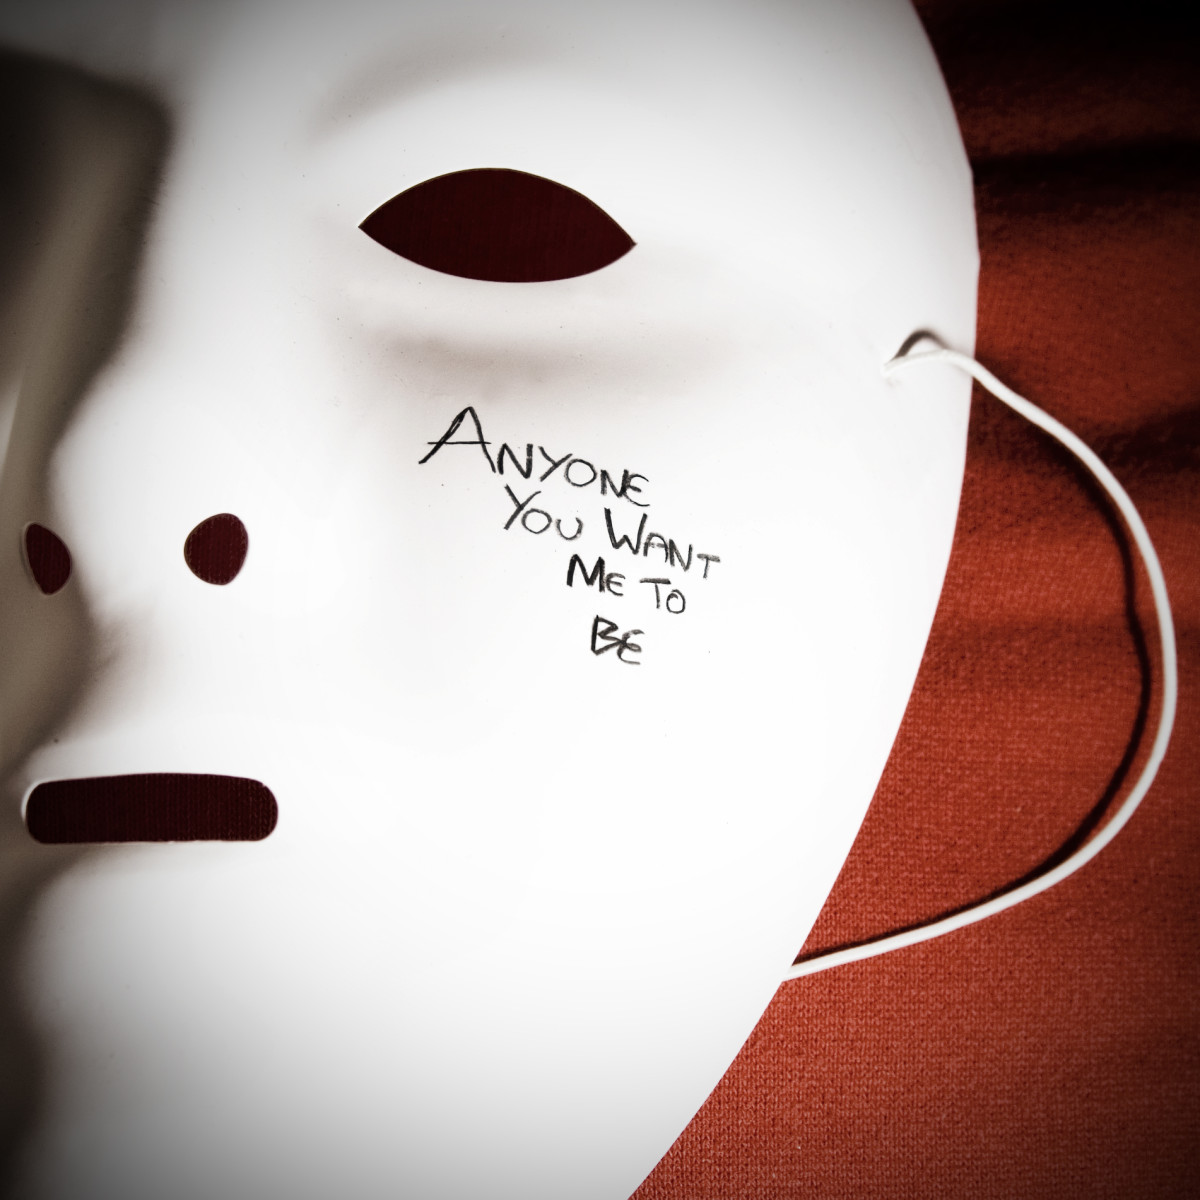 The Narcissist's Playlist: 76 Songs About Arrogance and Self